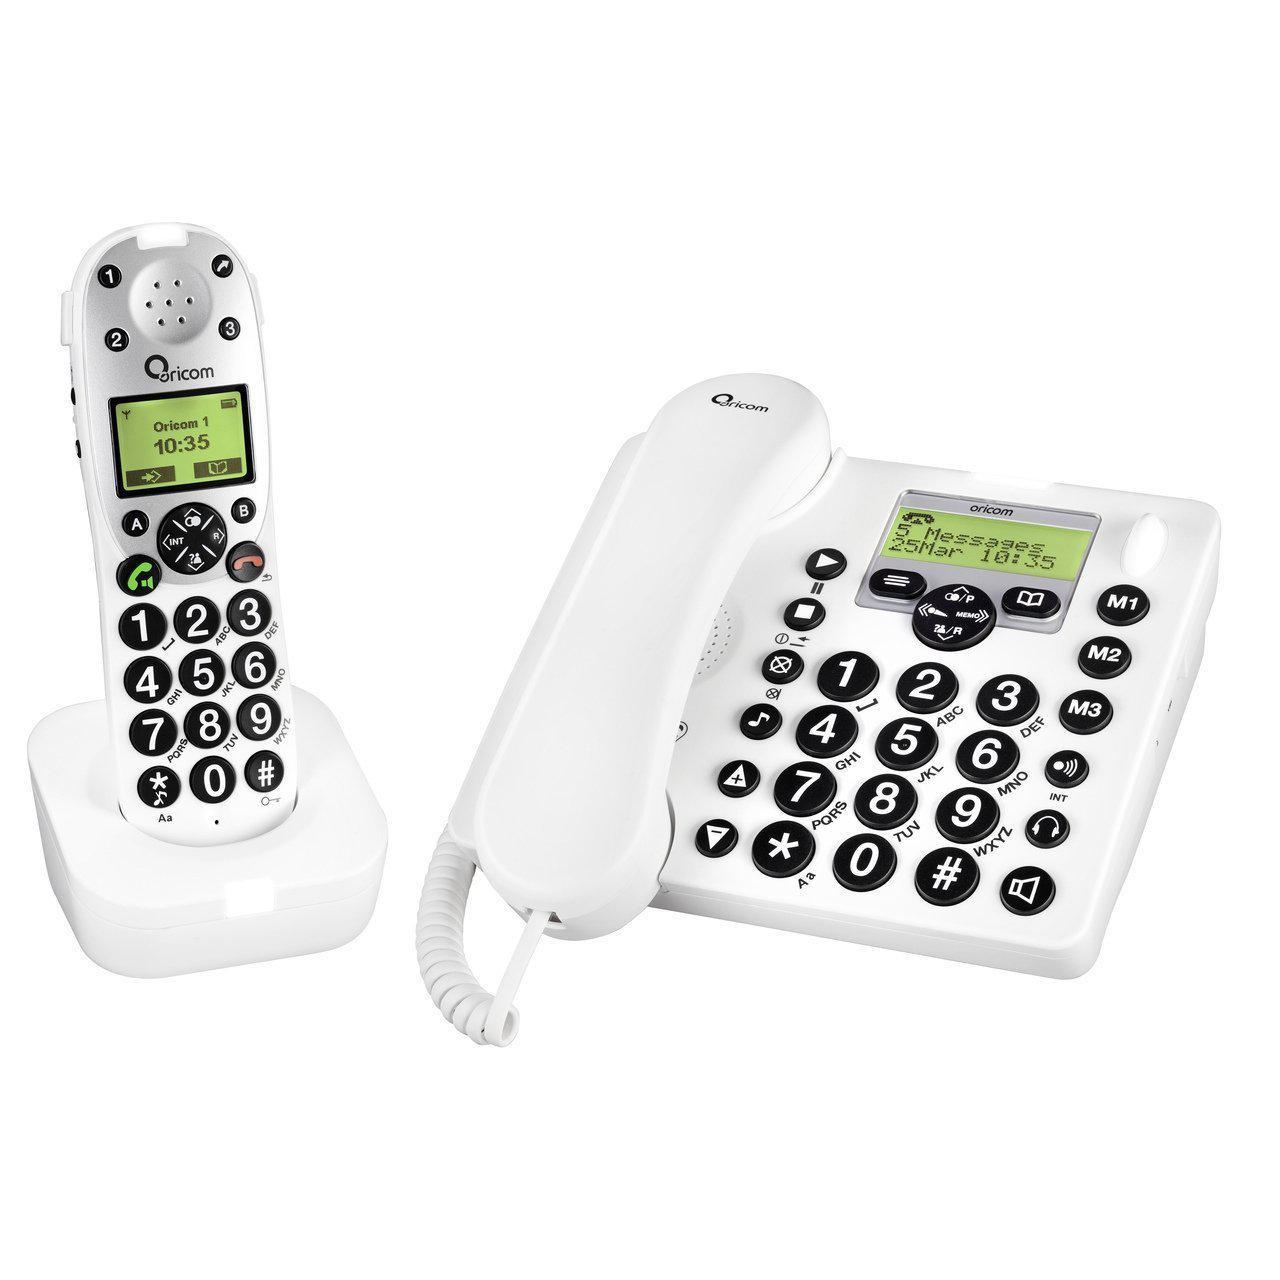 Oricom Pro 910- 1 Amplified Phone Combo with Answering Machine